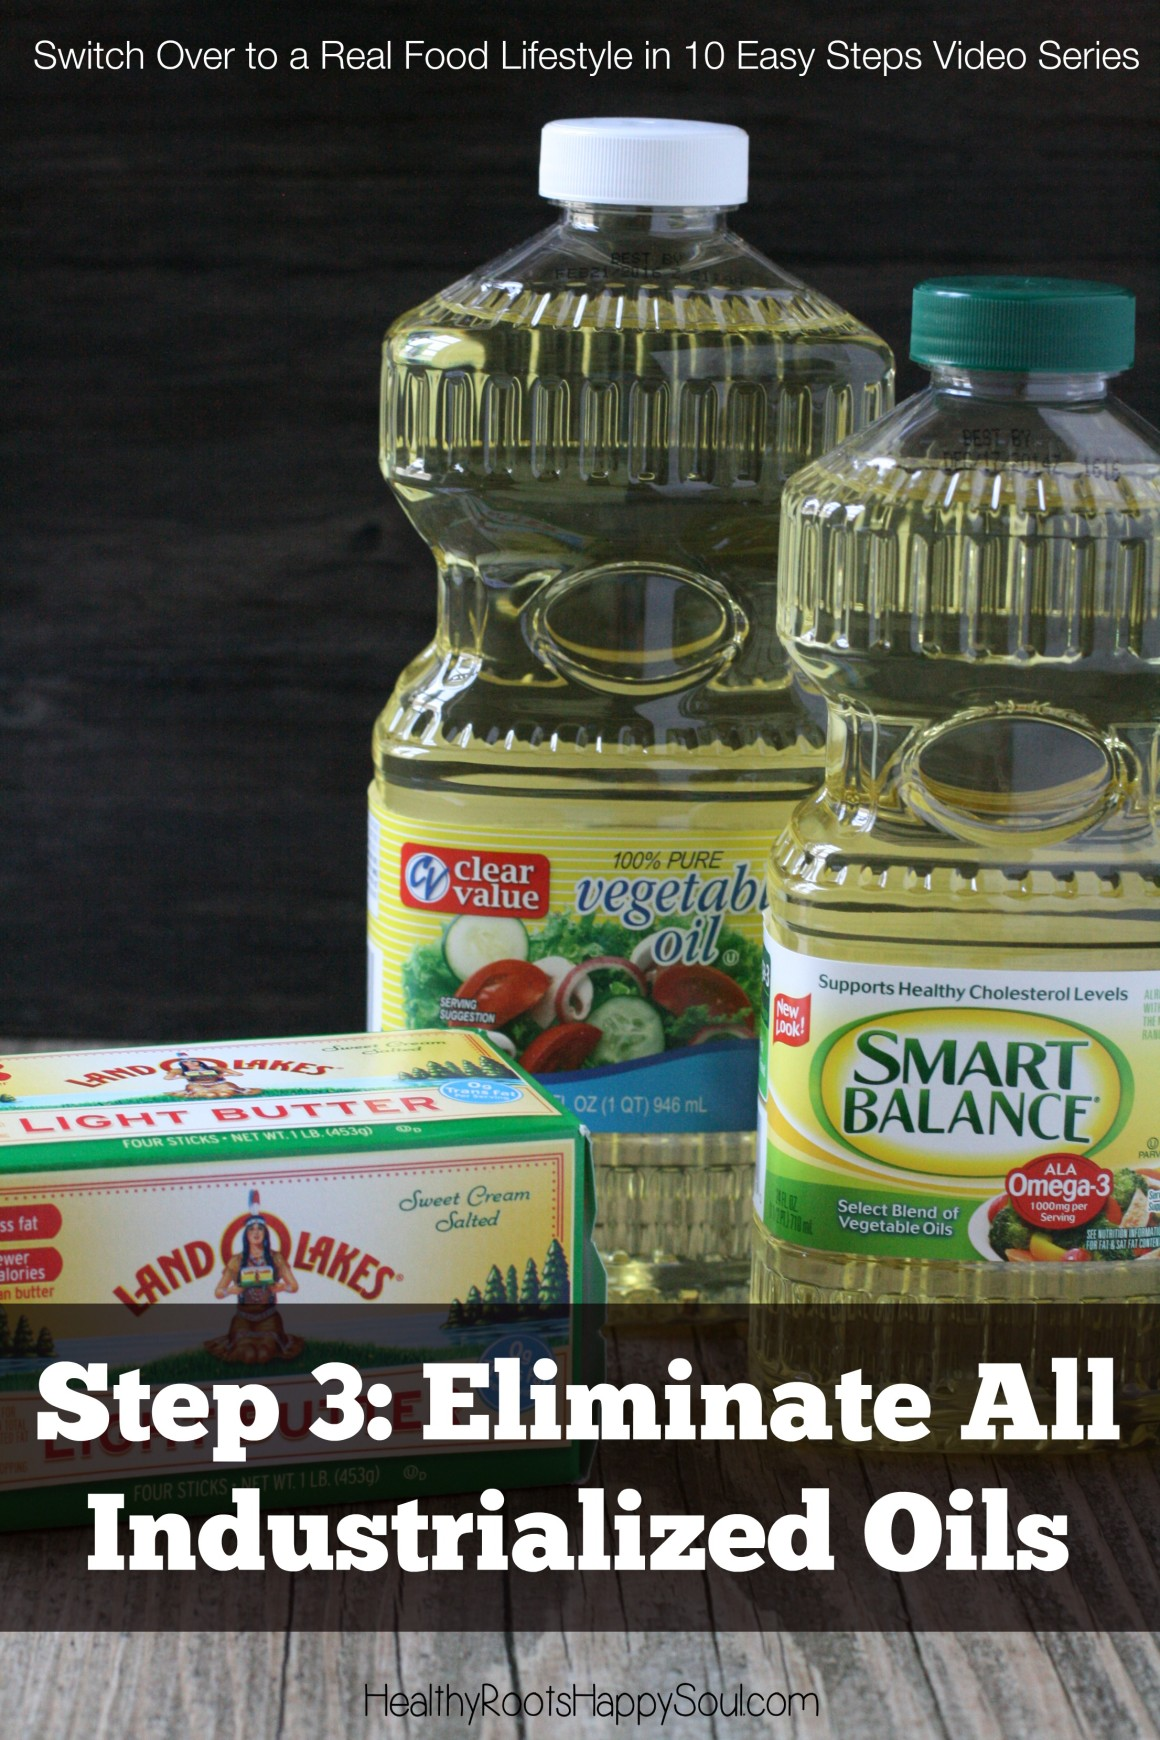 Step 3: Eliminate All Industrialized Oils